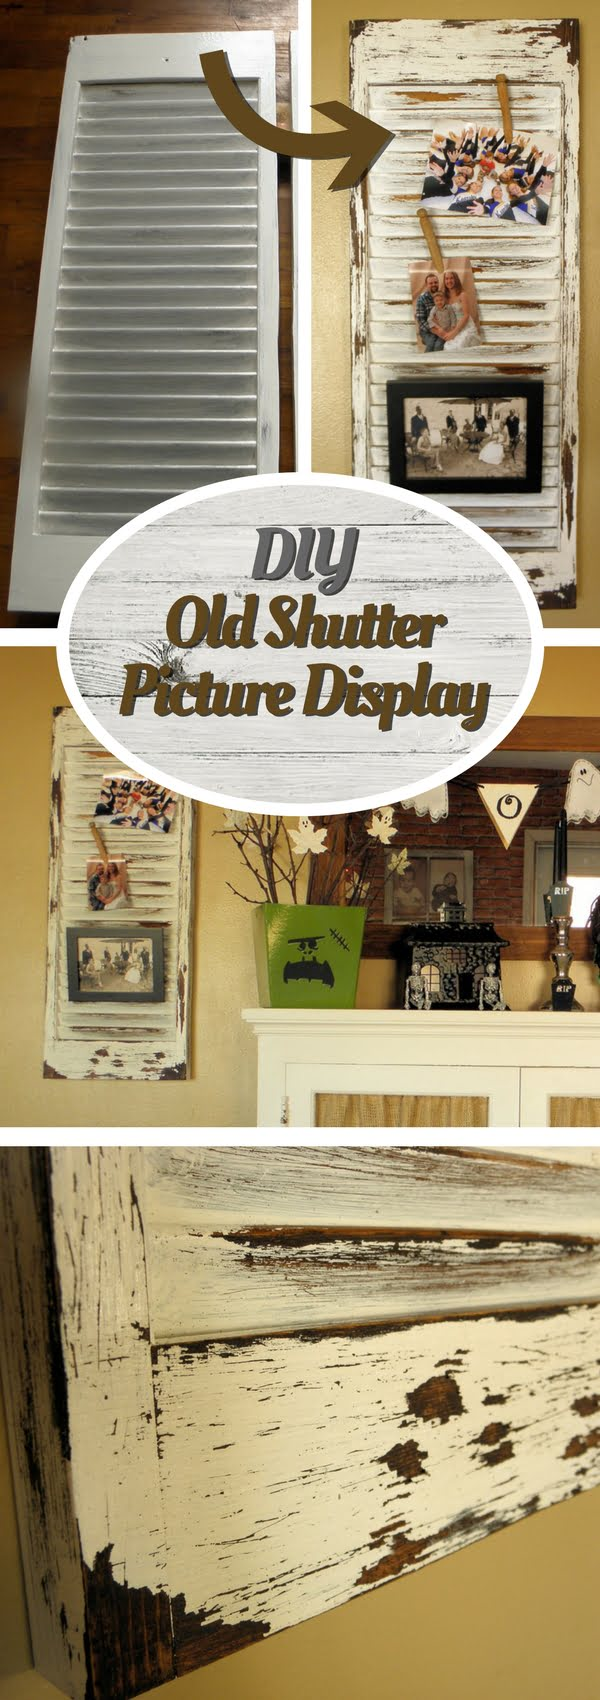 Check out how to make your own DIY shutters for picture display